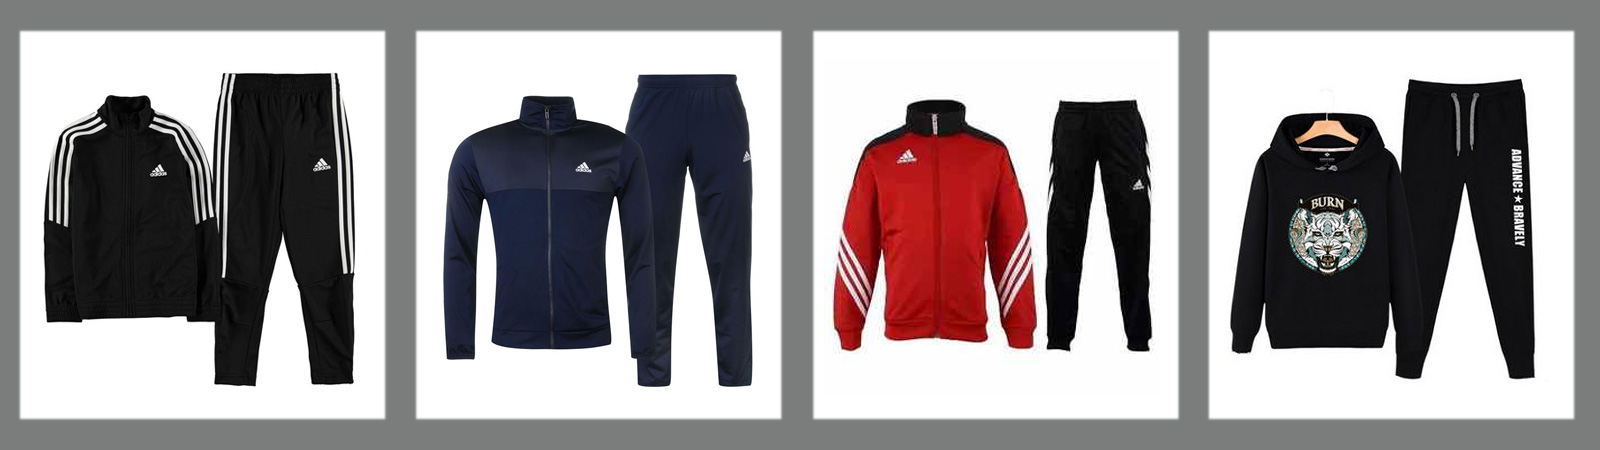 Advantages of Custom Tracksuits